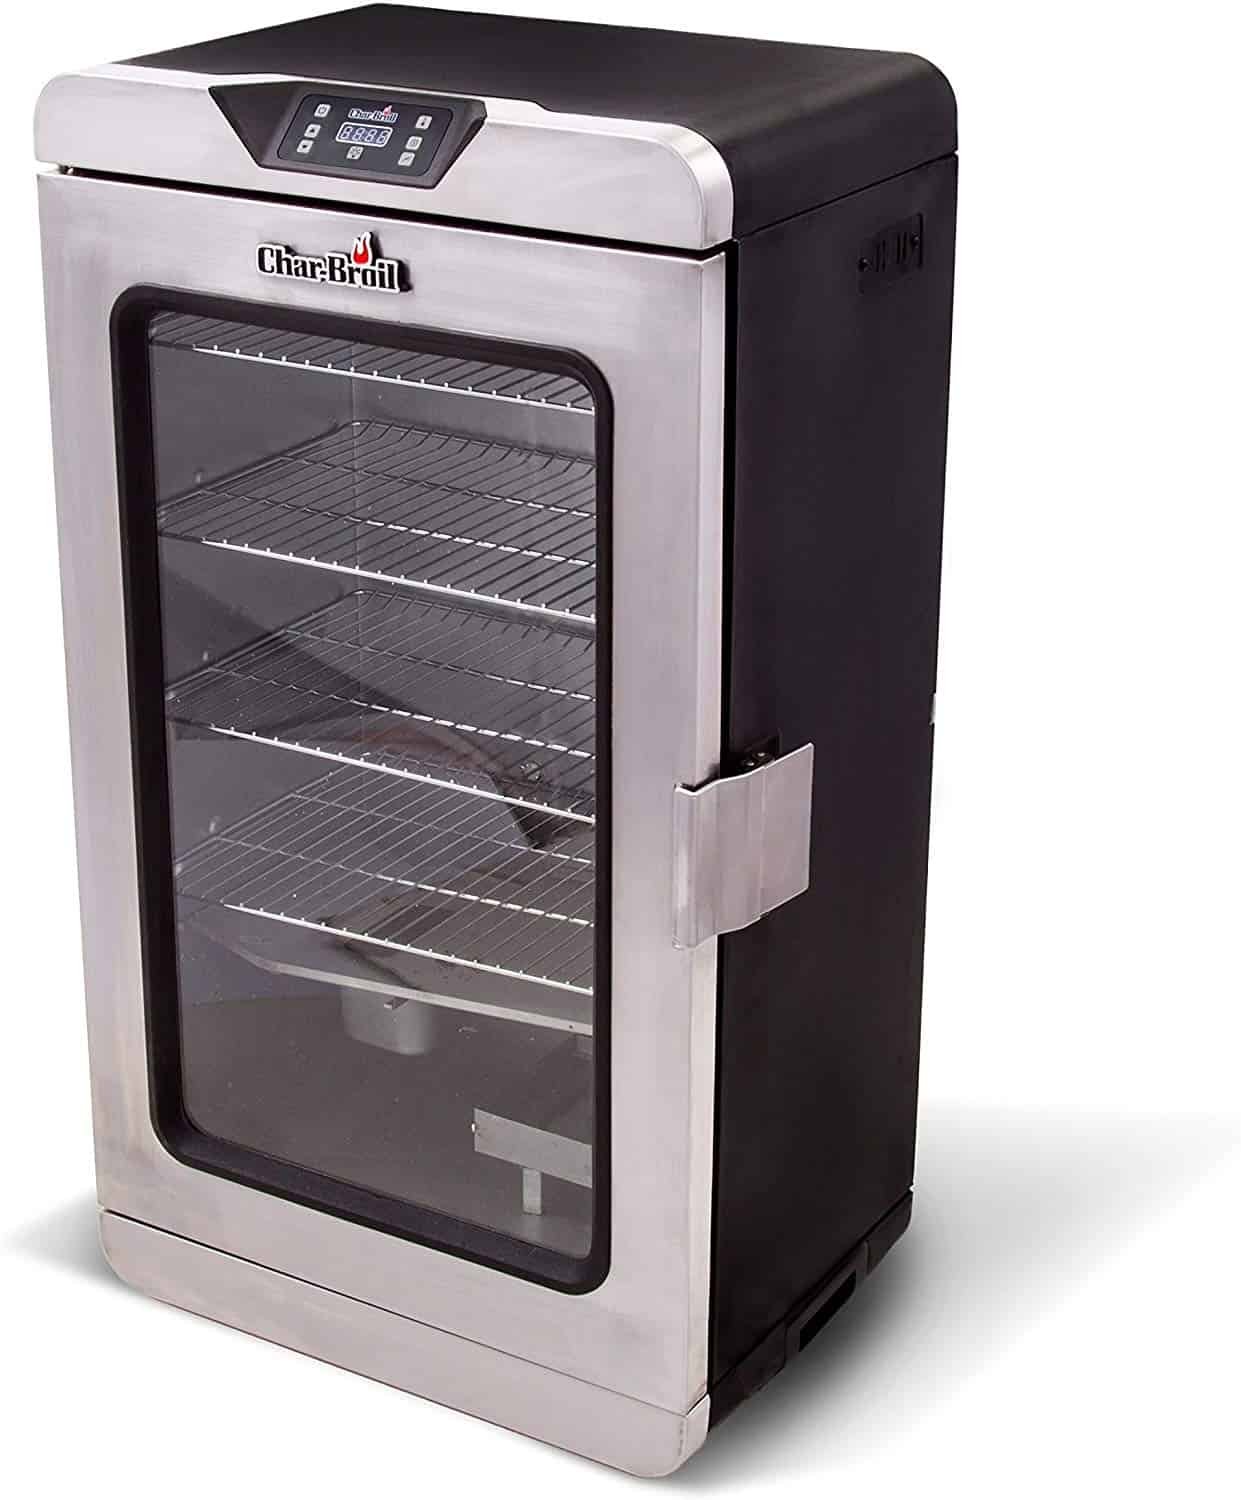 Char-Broil Deluxe Electric Smoker Review